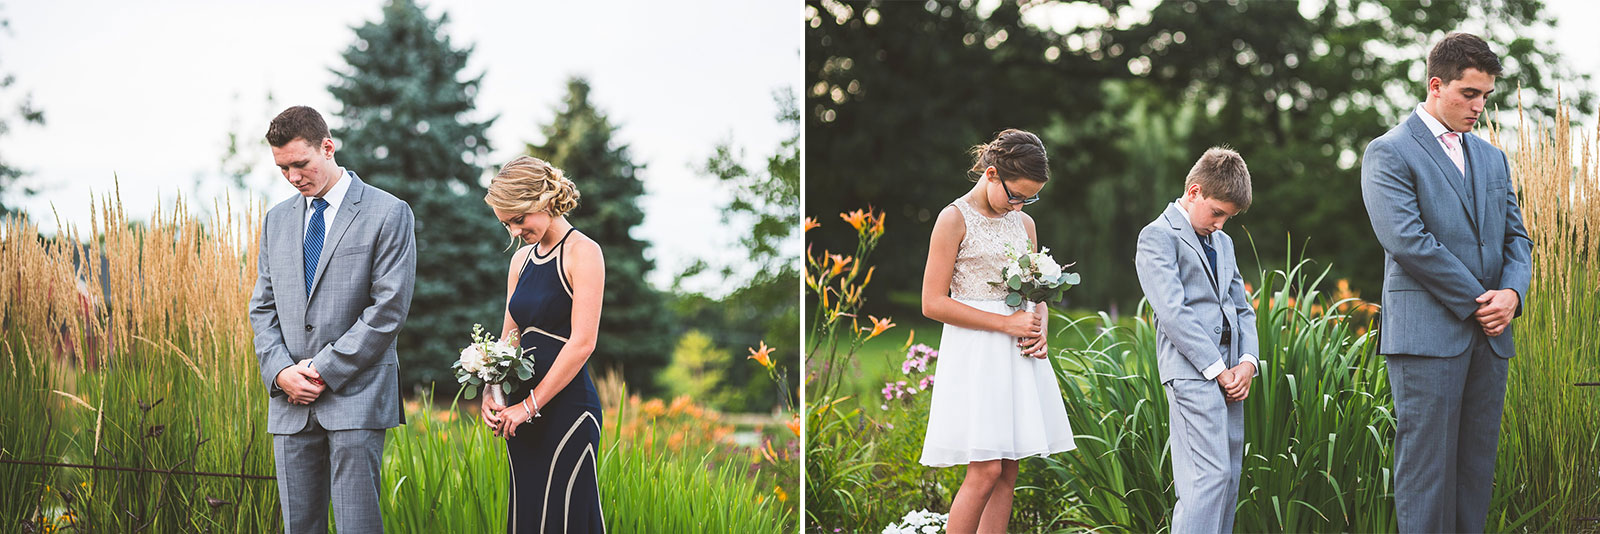 25 kids praying at wedding - Karen + Scott // Fishermens Inn Wedding Photographer Elburn Illinois